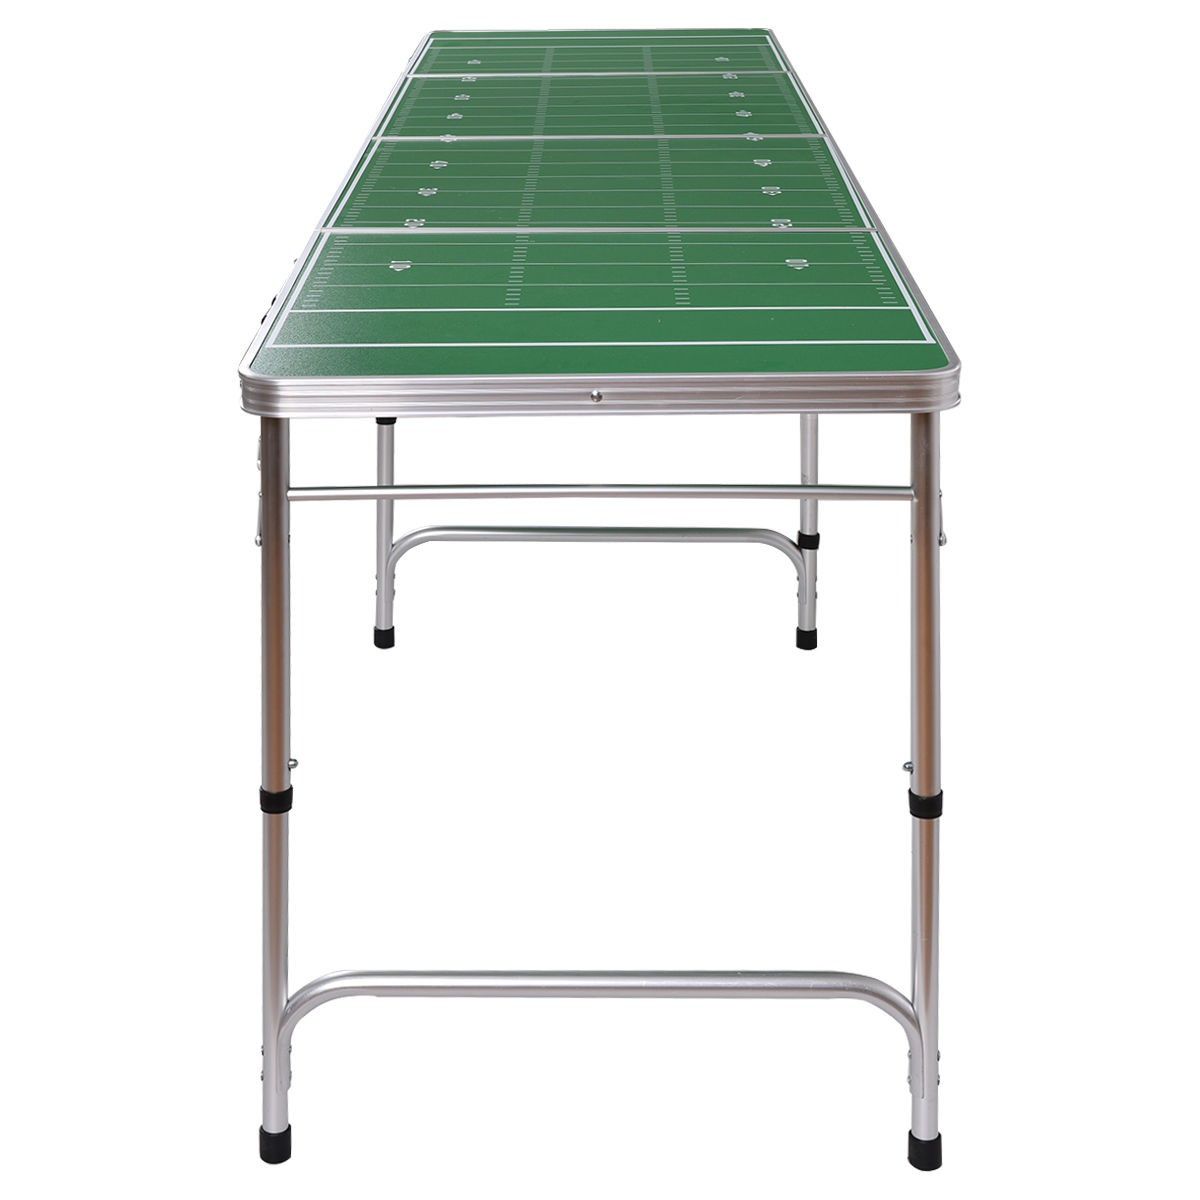 Ys 8ft aluminum portable folding beer ping pong table - What is the size of a ping pong table ...